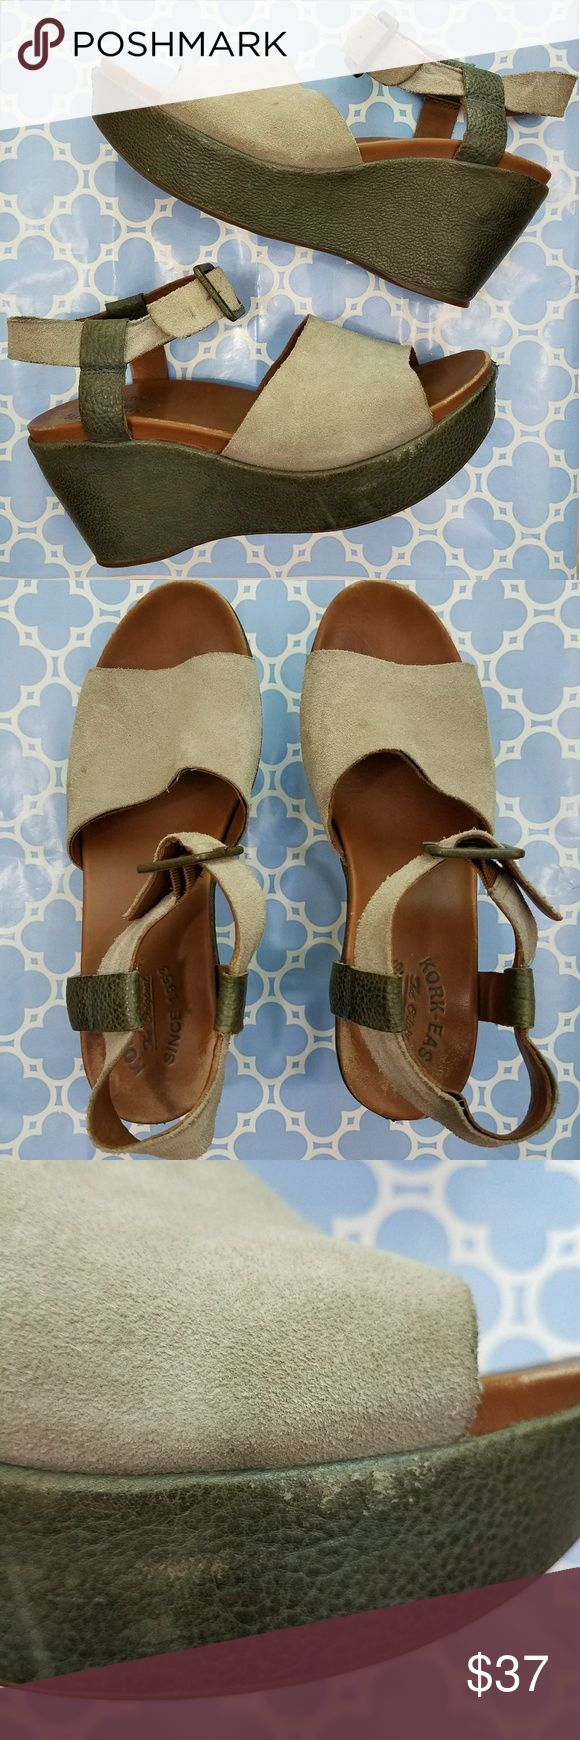 Kork-Ease Keirn Suede Platform Sandals Kork-Ease Keirn Suede Platform Sandals  These smash hit, sold out sandals are true to size and extraordinarily comfortable.  These shoes have seen a lot of love, see pics, but they are still very much wearable, ready to love again, and thinking it could be a lifelong connection due to their impeccable craftsmanship. They look amazing with an oversized orange and white t shirt and high waisted straight leg vintage jeans!  Leather upper and lining…